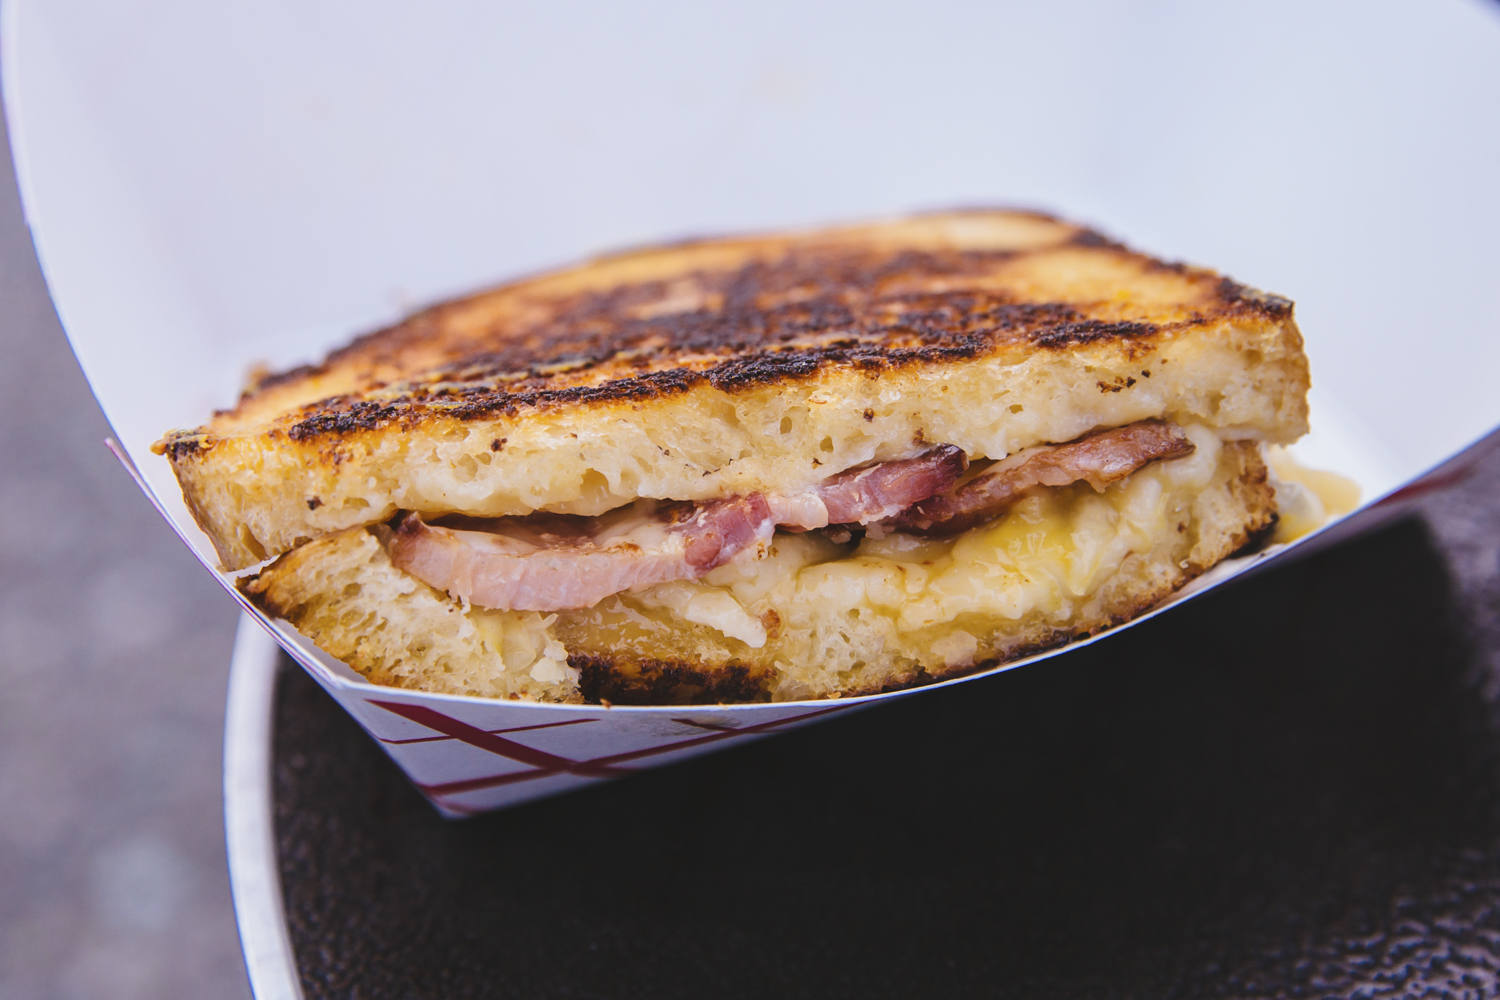 <p>&quot;On The Beech&quot;, from The Cheese Pit food truck. Beecher's Flagship Cheese, Thick sliced bacon and crushed pineapple with a citrus glaze on Seattle Sourdough. Seattle's annual Grilled Cheese Grand Prix event kicked off this weekend, properly celebrating April as National Grilled Cheese Month. We went, obviously (for work....) and here were the juiciest sammies on the block we could find. The good news? Pretty much all of these come from brick and mortar stores you can find any time in the city - not just April, and not just t the Grand Prix. (Image: Sunita Martini / Seattle Refined)</p>